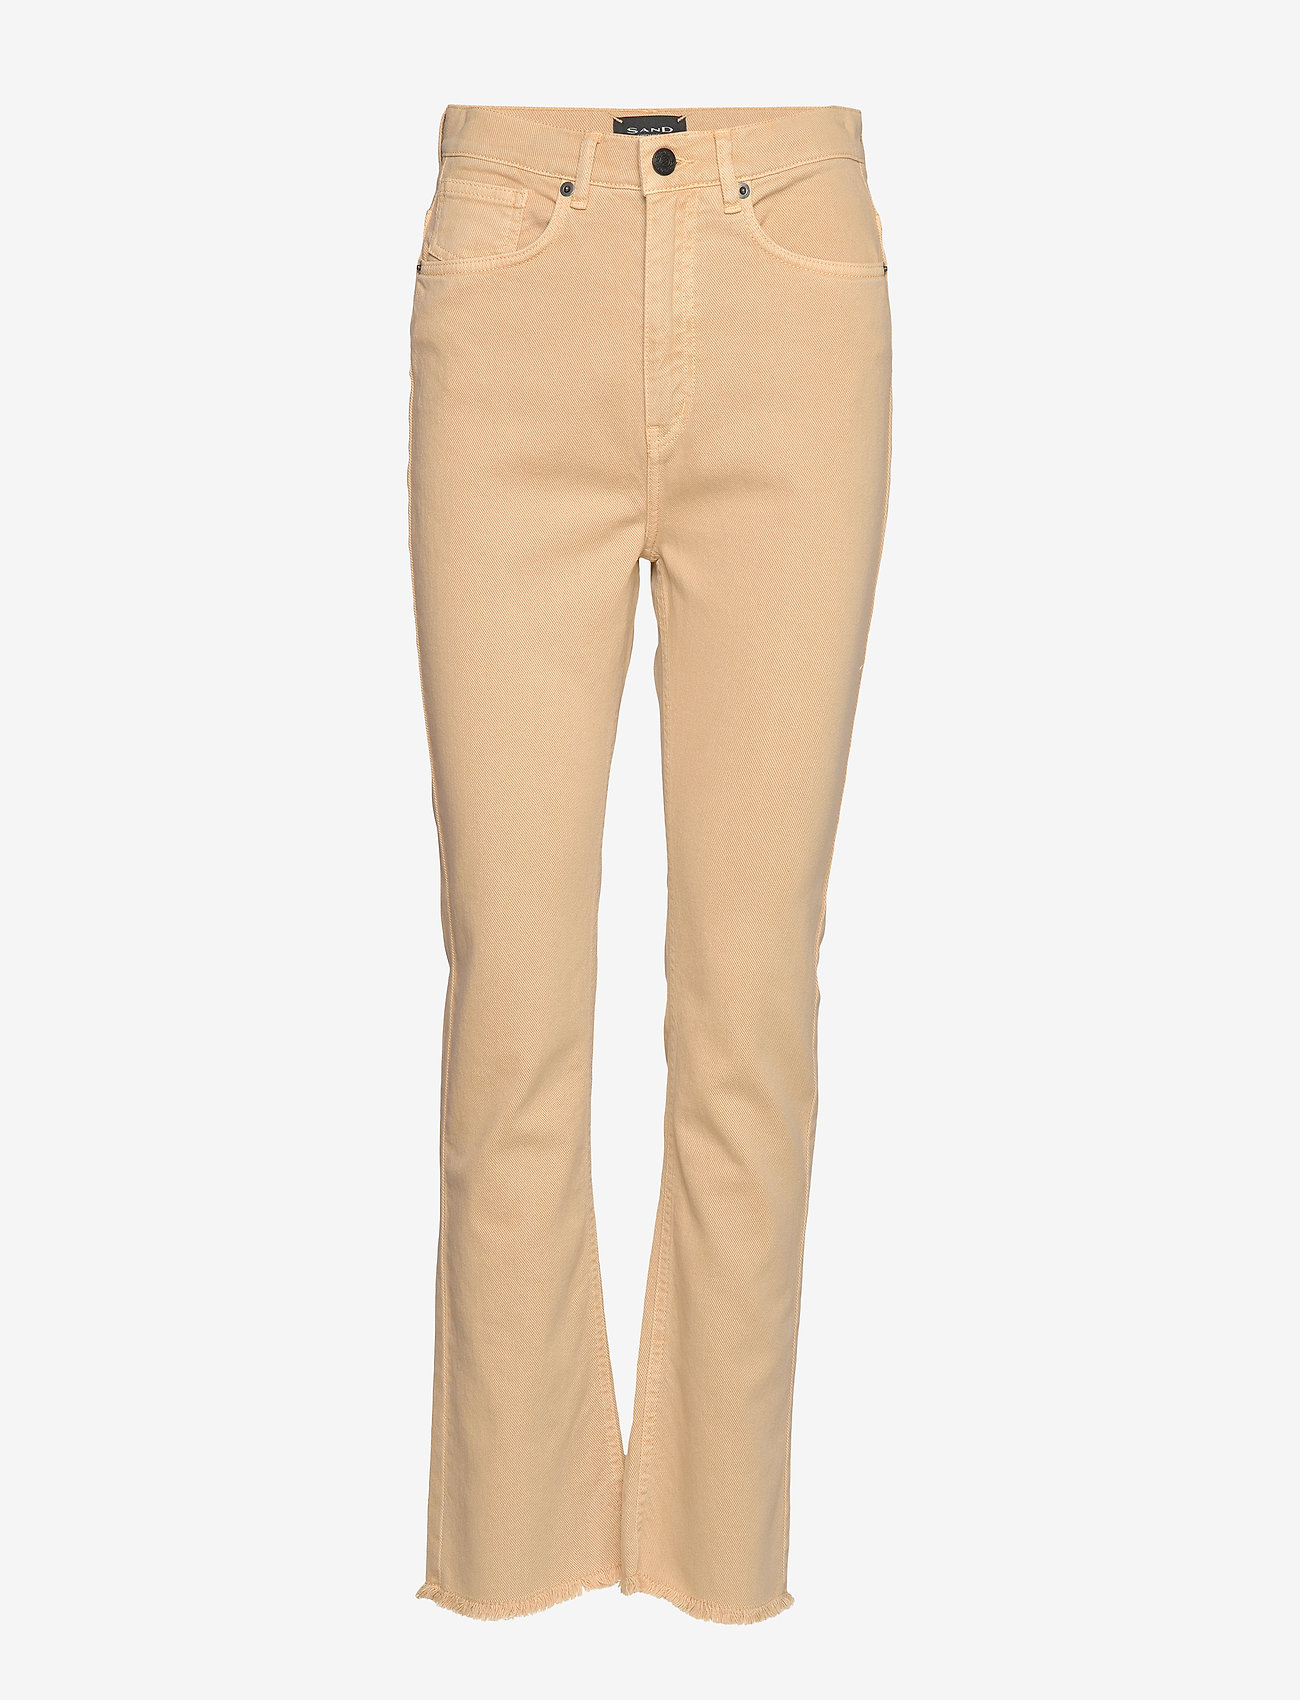 SAND - 0639 - Kathy Cropped - boot cut jeans - sand - 0